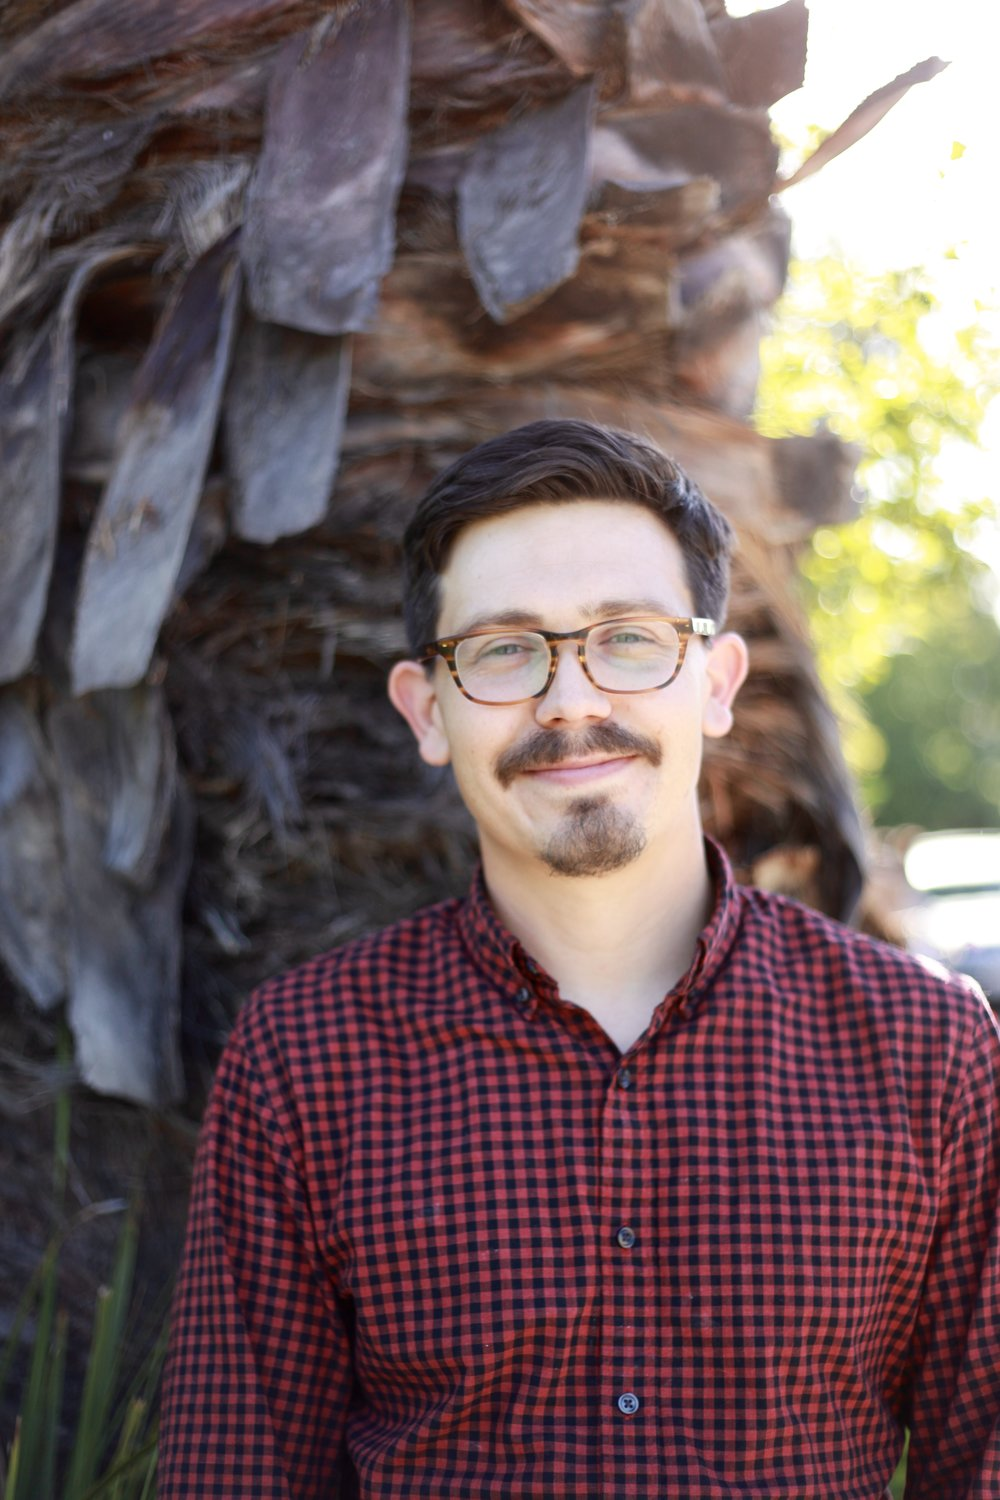 Paul Towers is Executive Director at Community Alliance with Family Farmers, a leader of the Sacramento Food Policy Council and of the California Food & Farmer Network, and is an aspiring urban farmer. His roots are in Southern Arizona and considers Sacramento home.